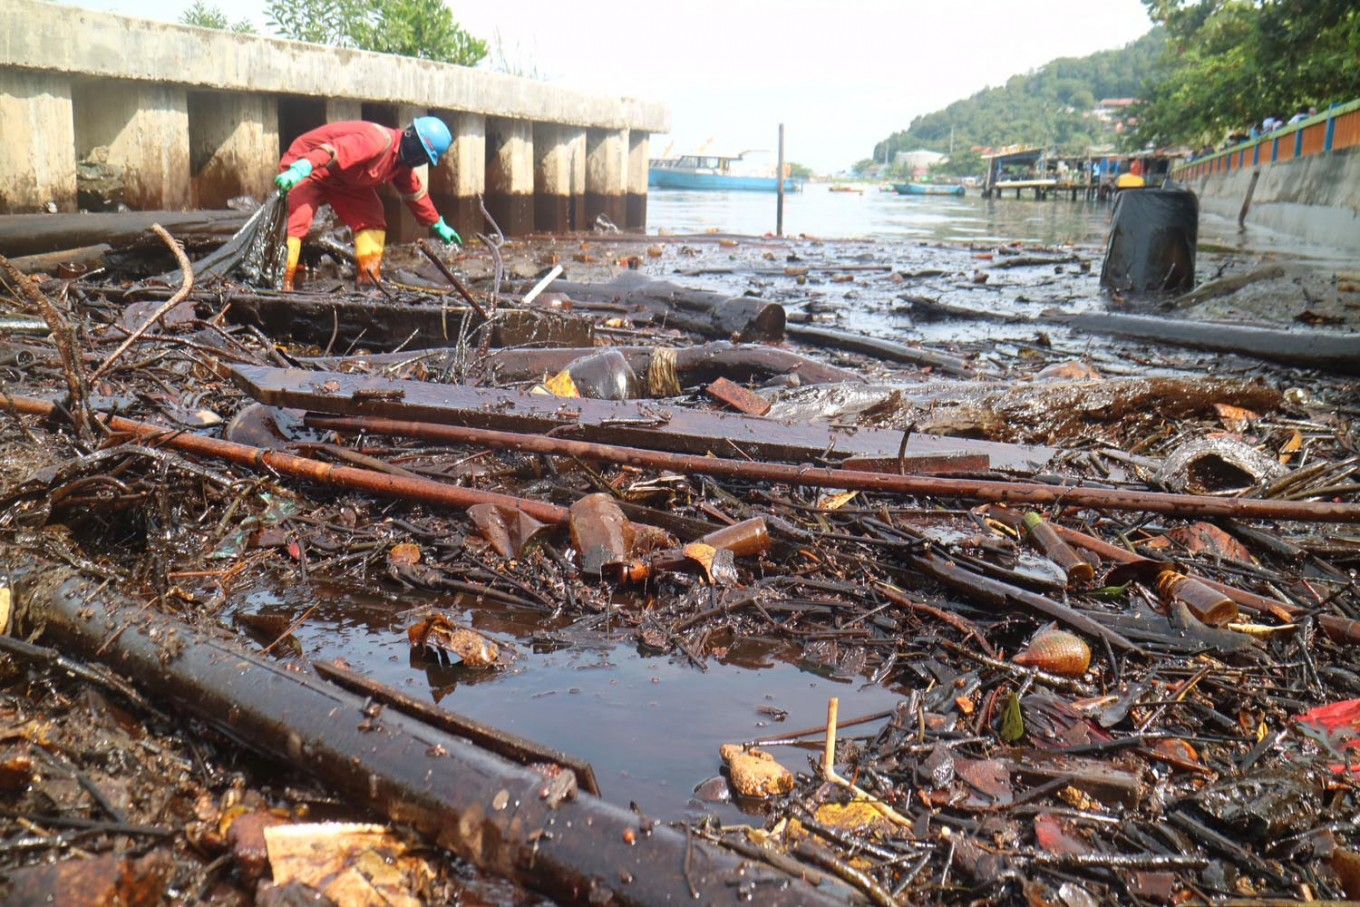 Hazardous, toxic waste pollutes beaches in Balikpapan Bay